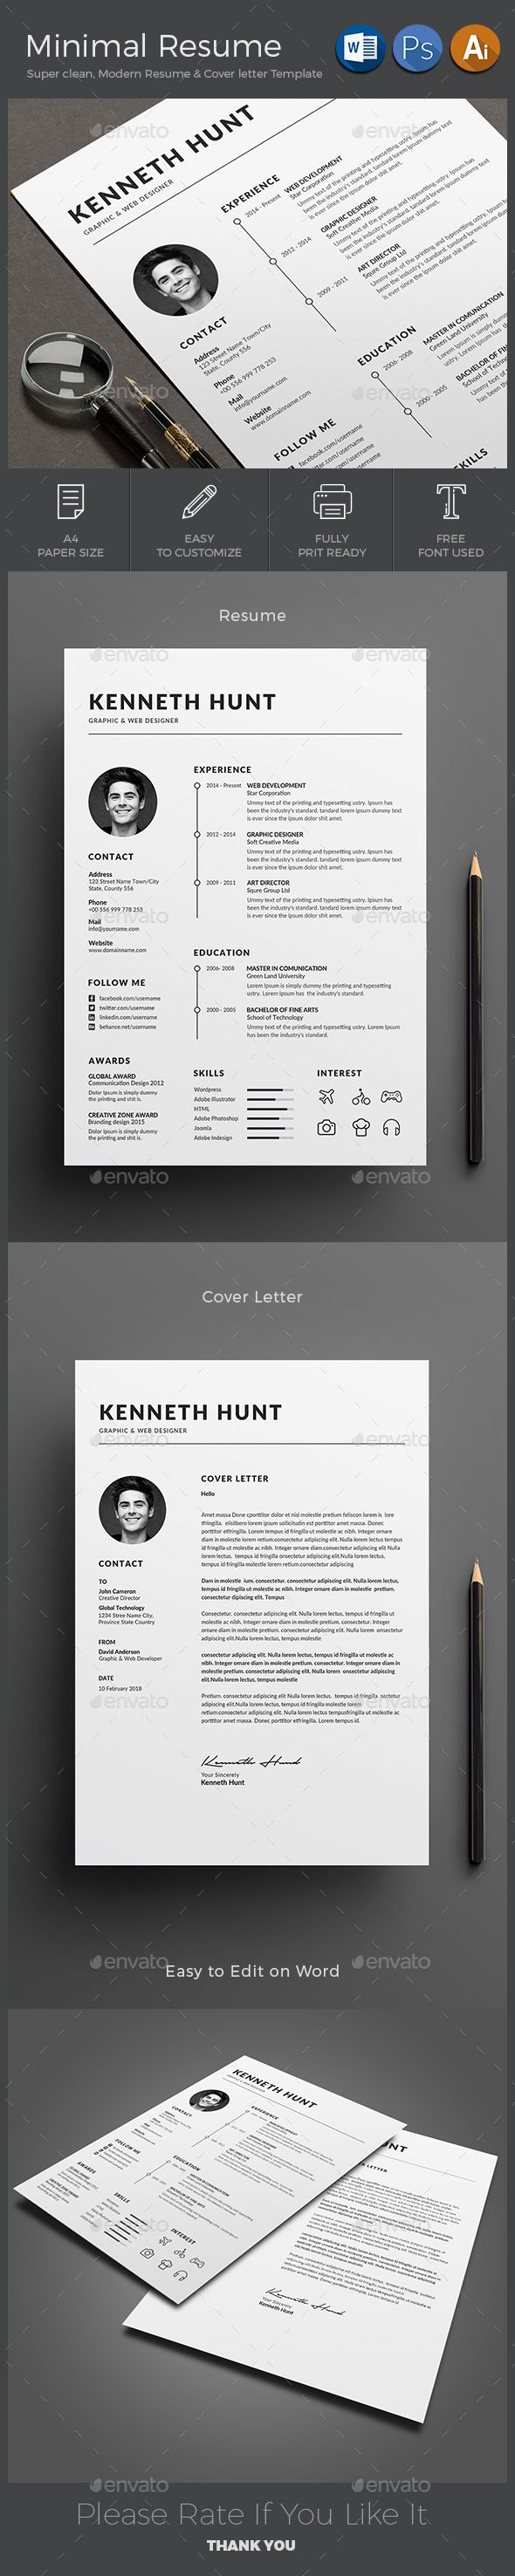 Resume Resume Design TemplateFree 237 best